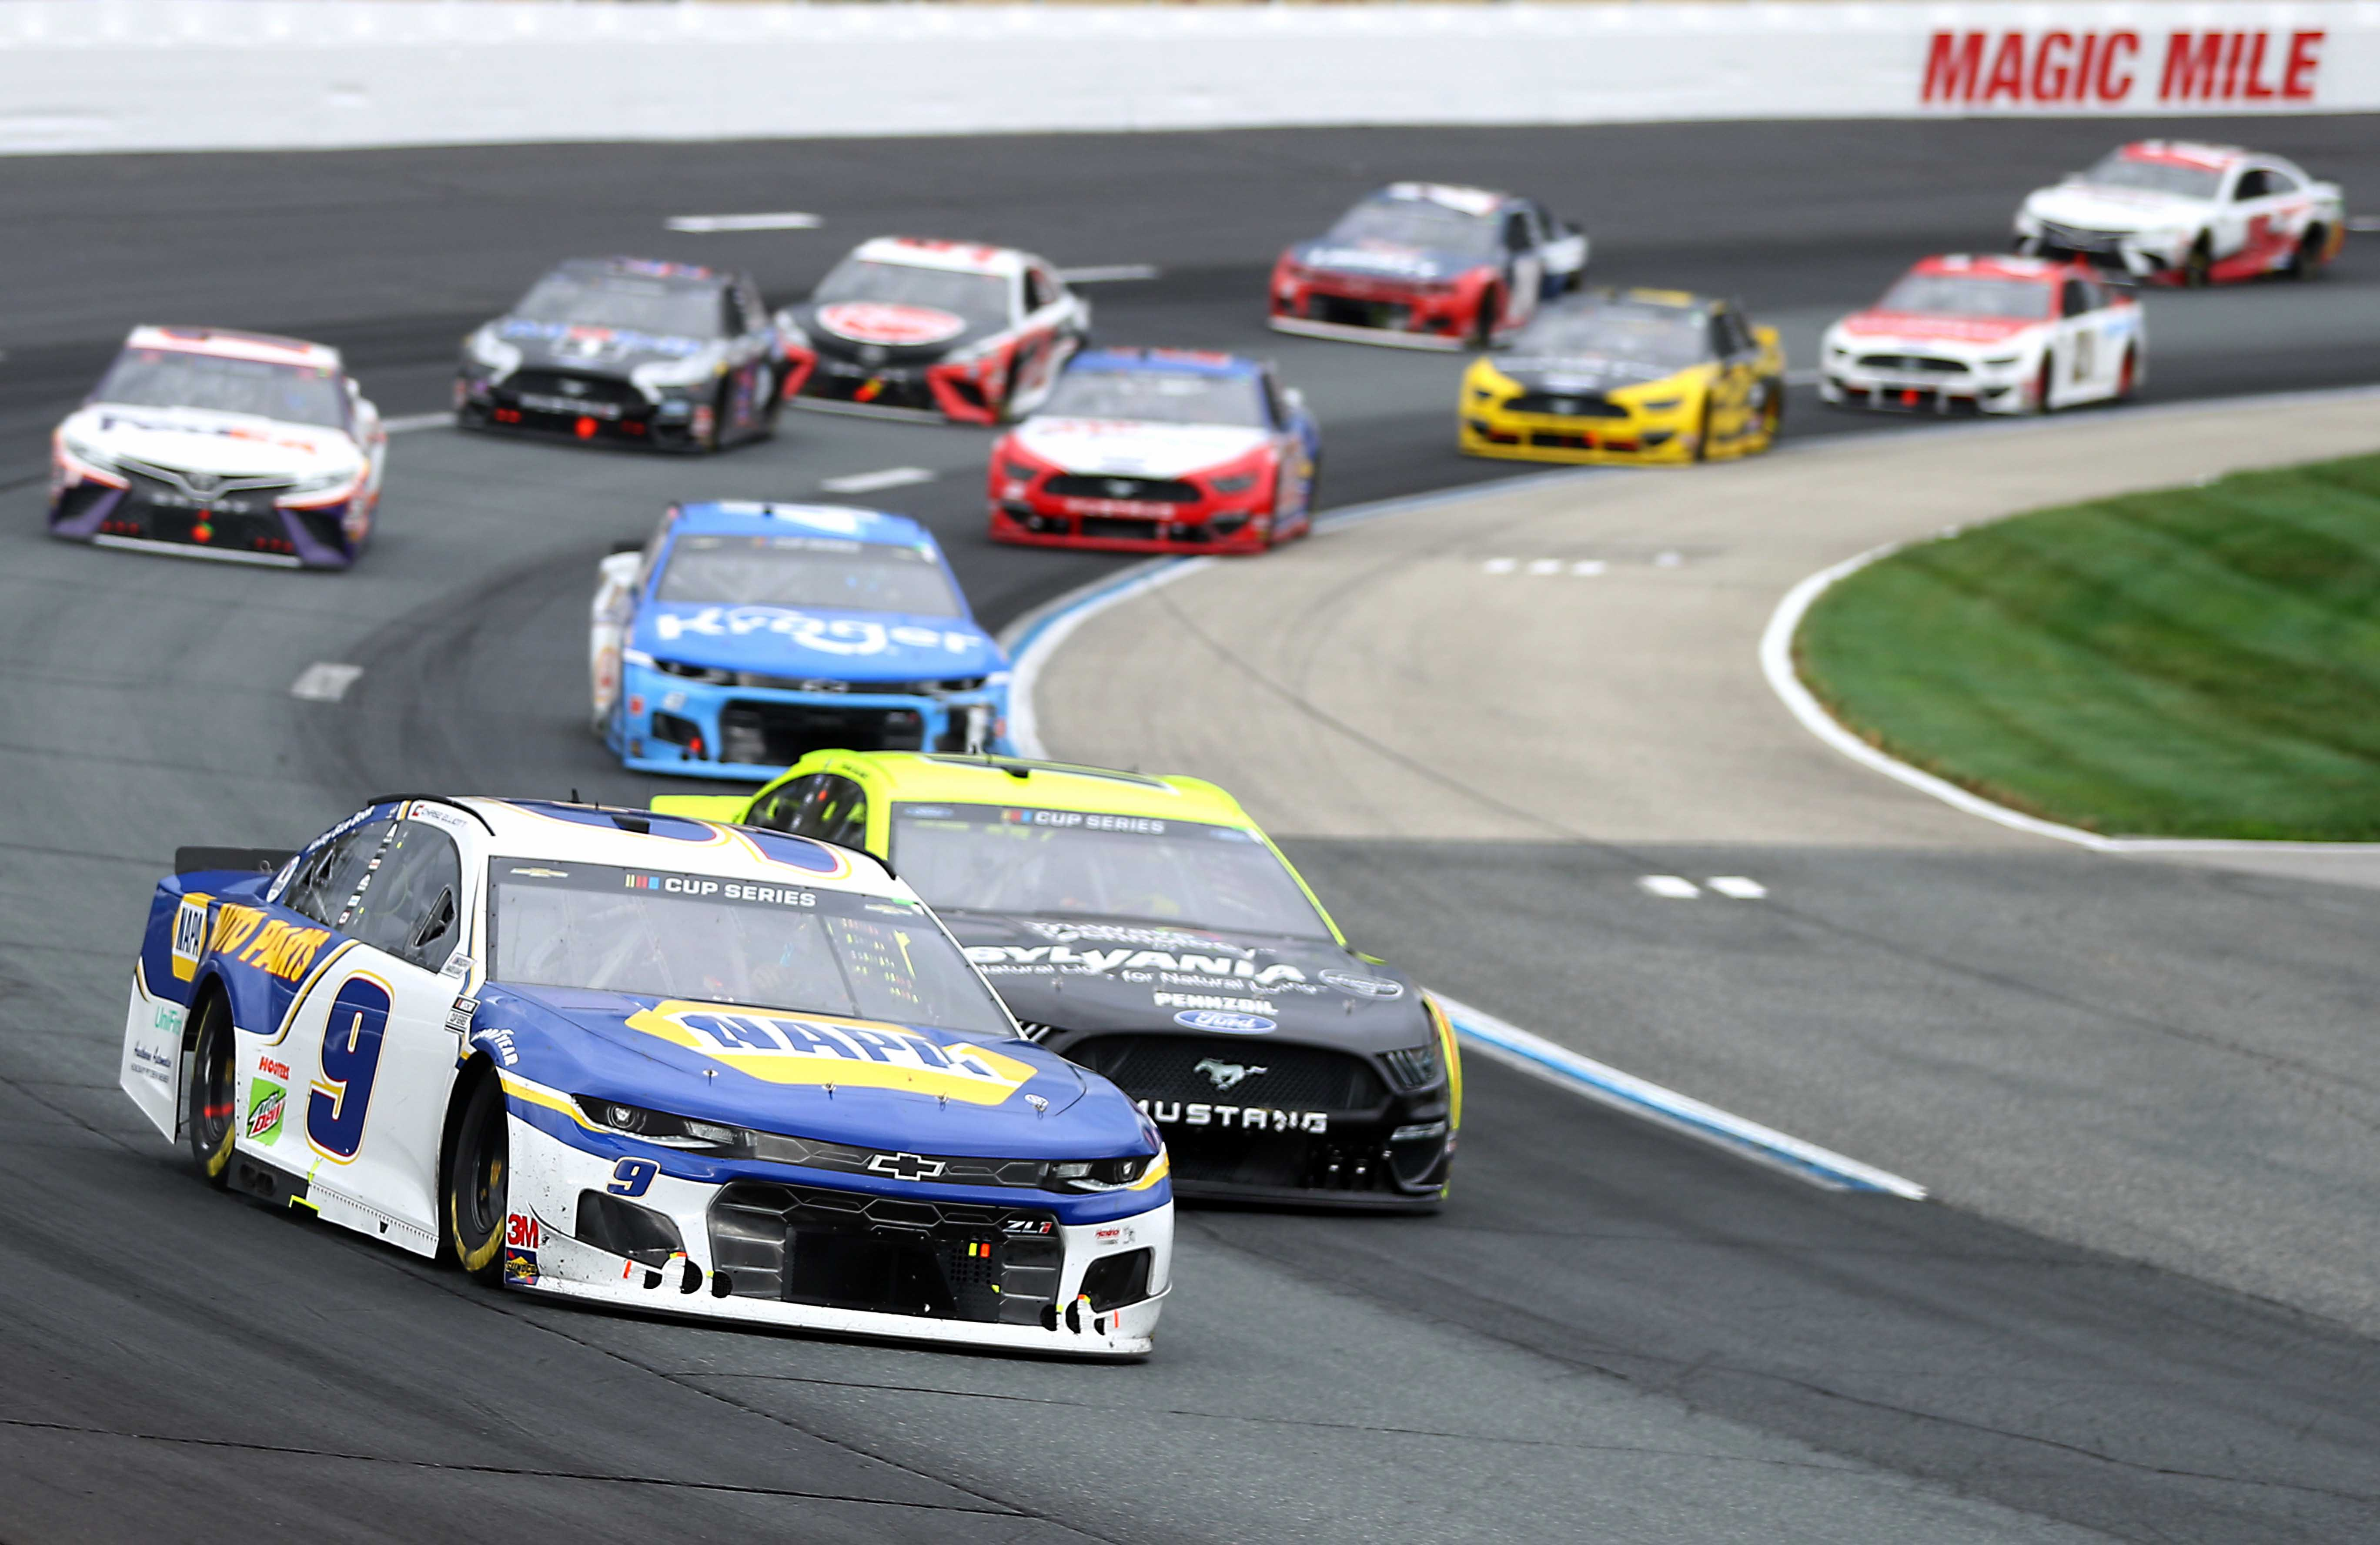 Chase Elliott and Ryan Blaney at New Hampshire Motor Speedway - NASCAR Cup Series